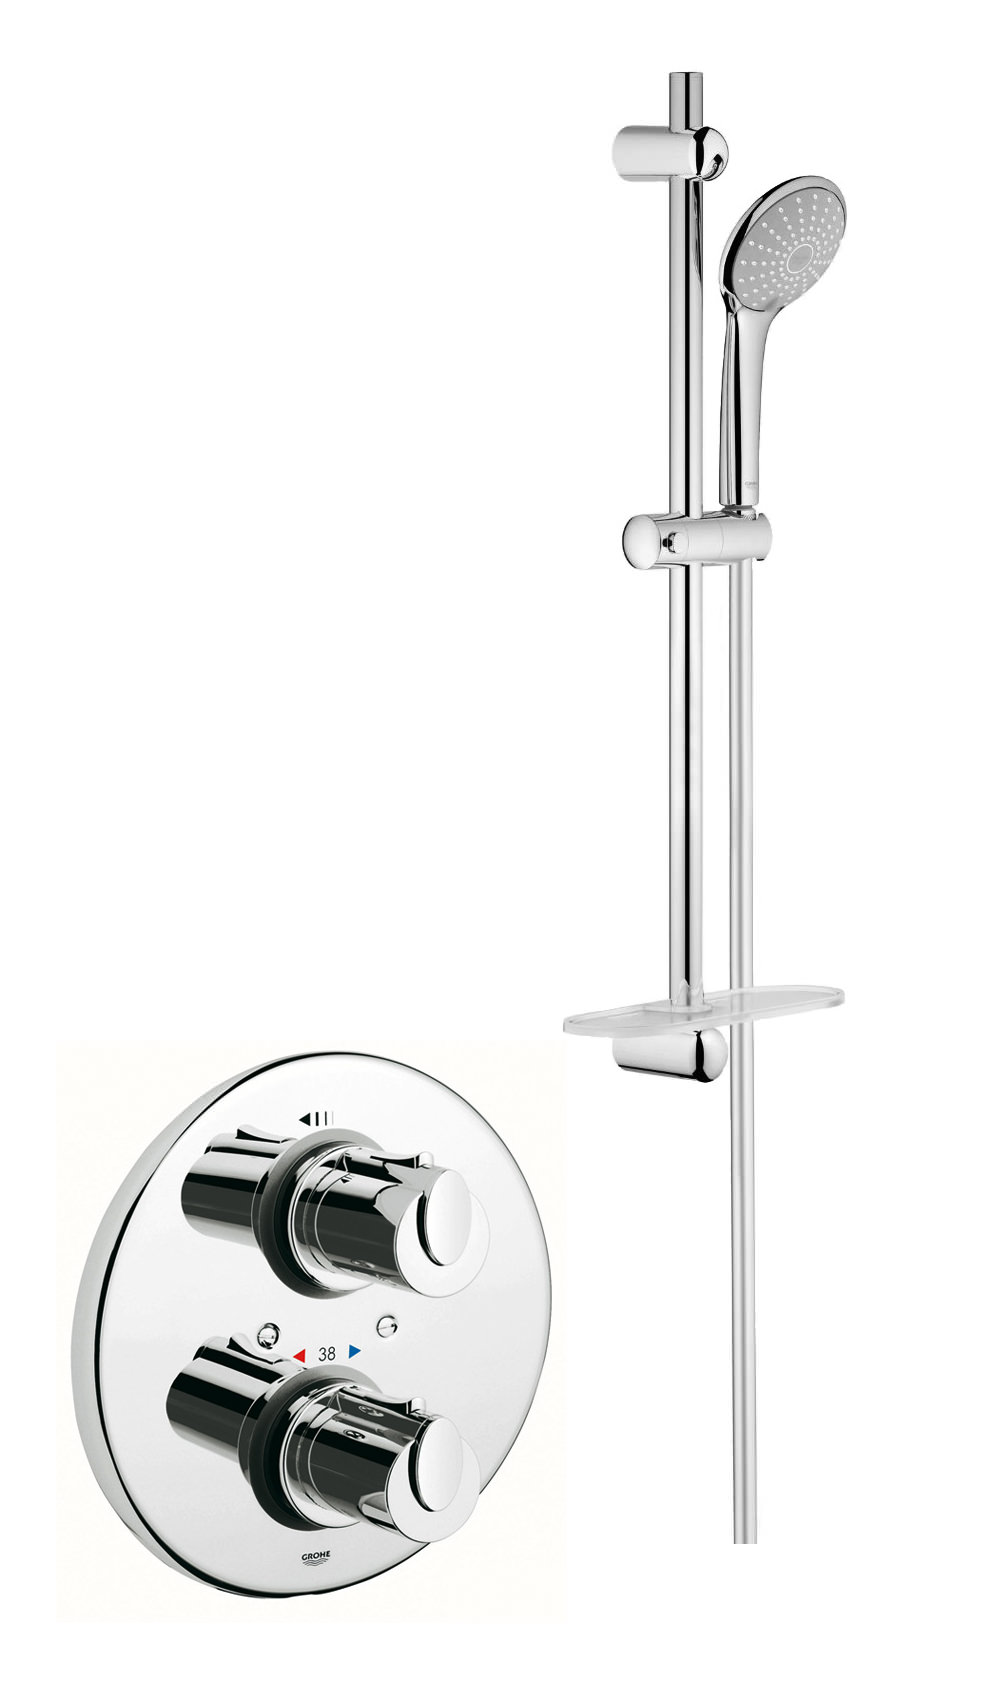 grohe grohtherm 1000 shower set with thermostatic shower valve. Black Bedroom Furniture Sets. Home Design Ideas